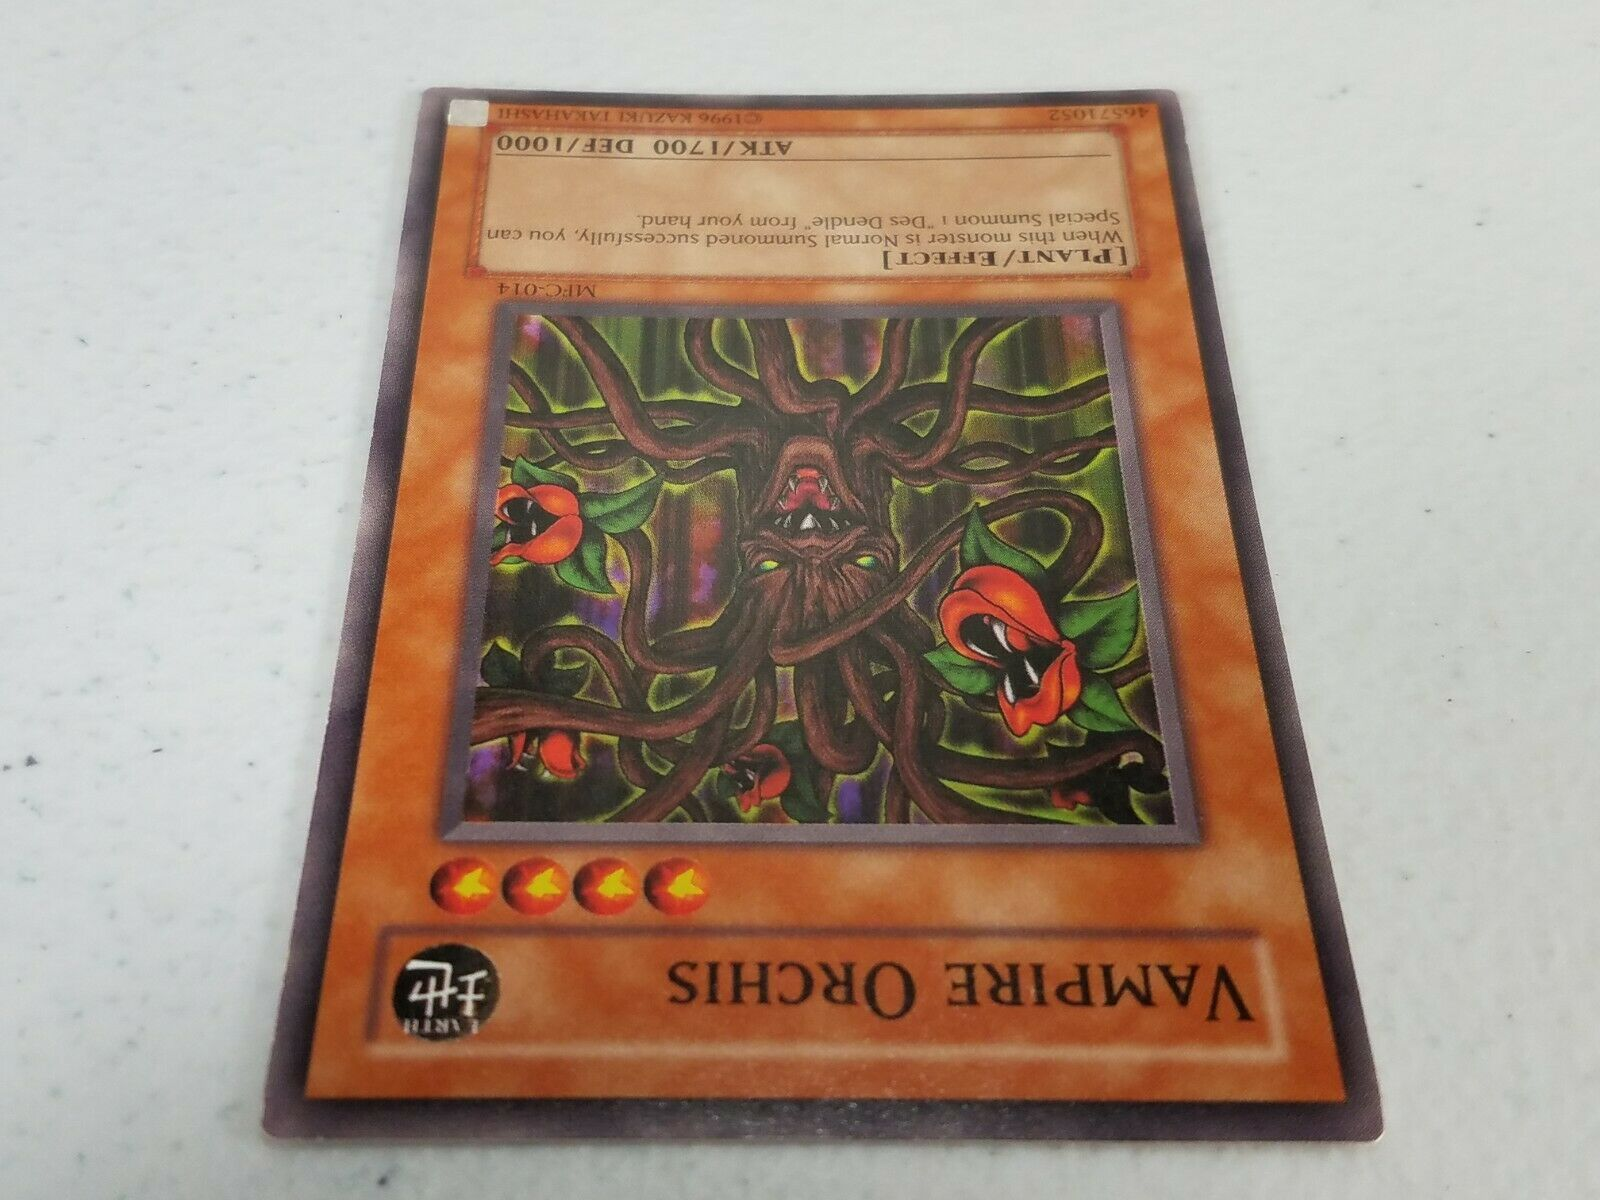 Yu-gi-oh! Trading Card - Vampire Orchis - MFC-014 - Common